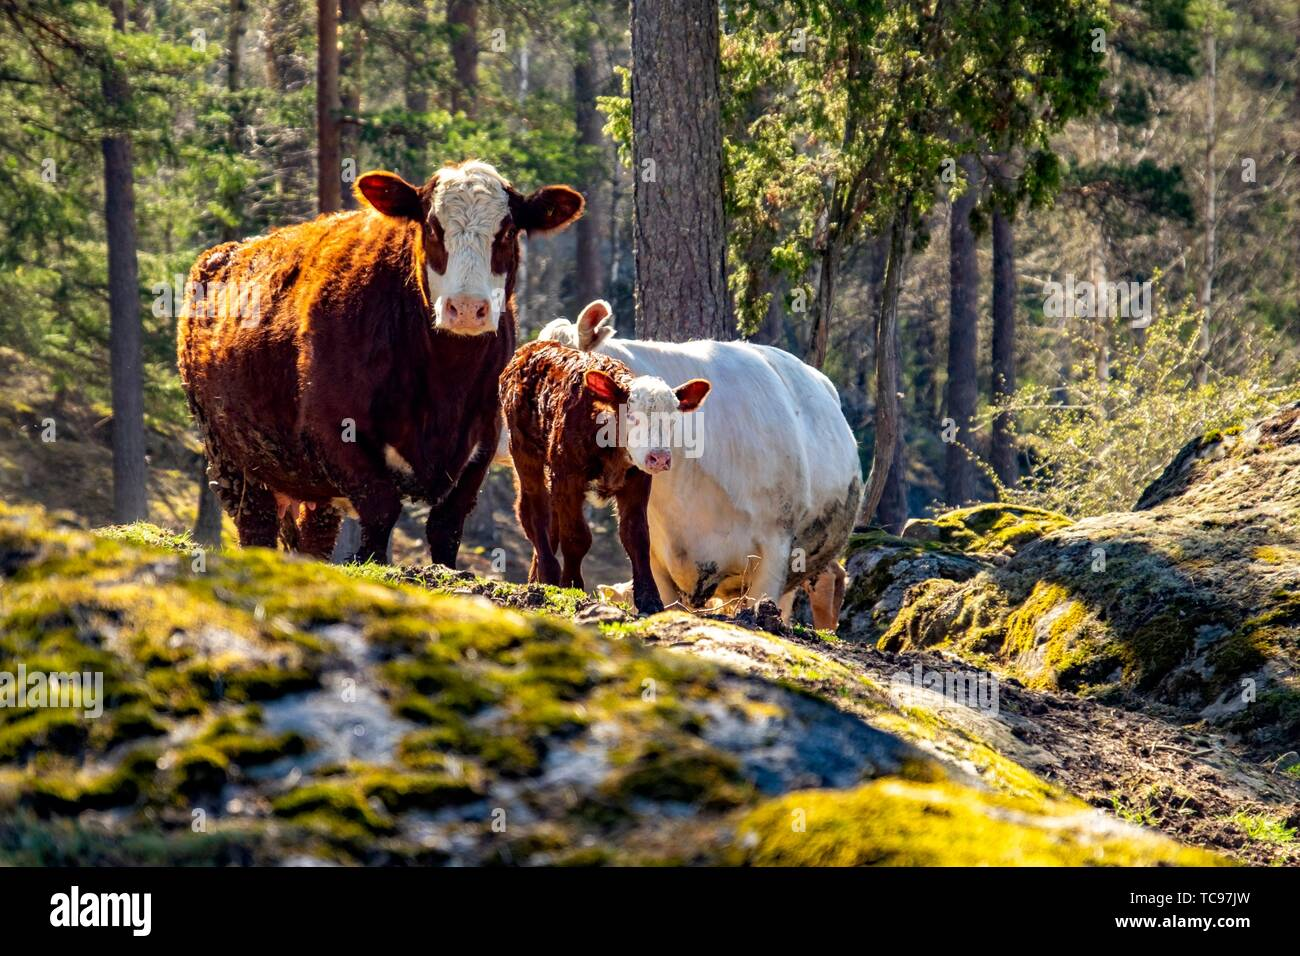 Newborn calfs with mother cows in a Swedish forest. - Stock Image